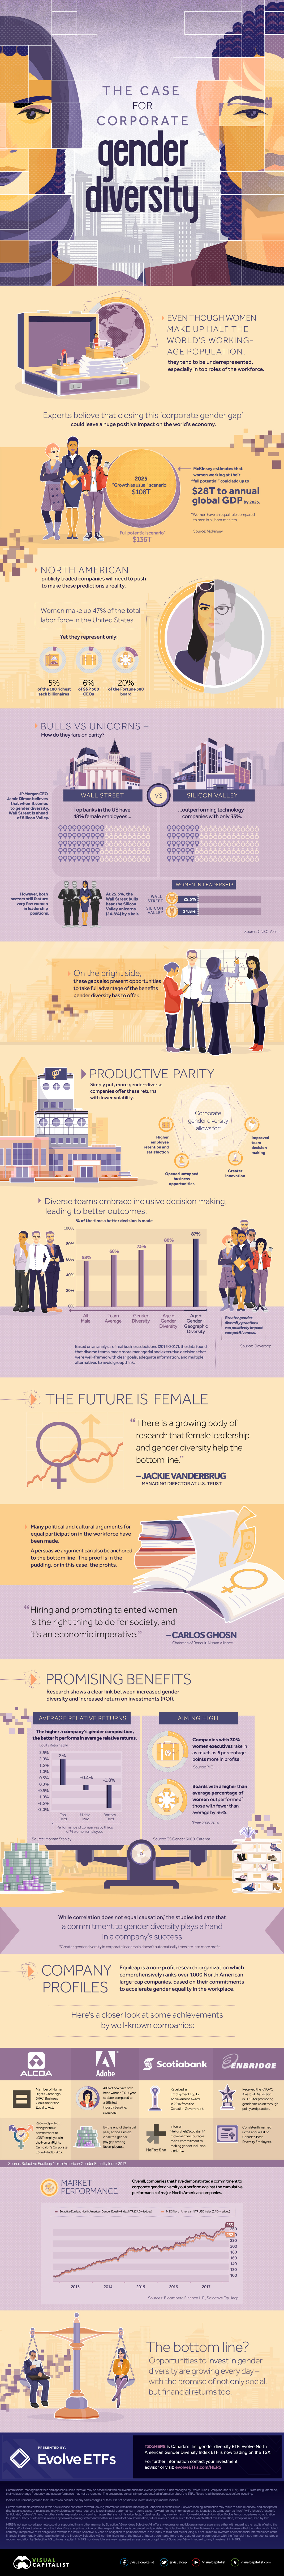 How Gender Diversity Leads to a Bigger Bottom Line